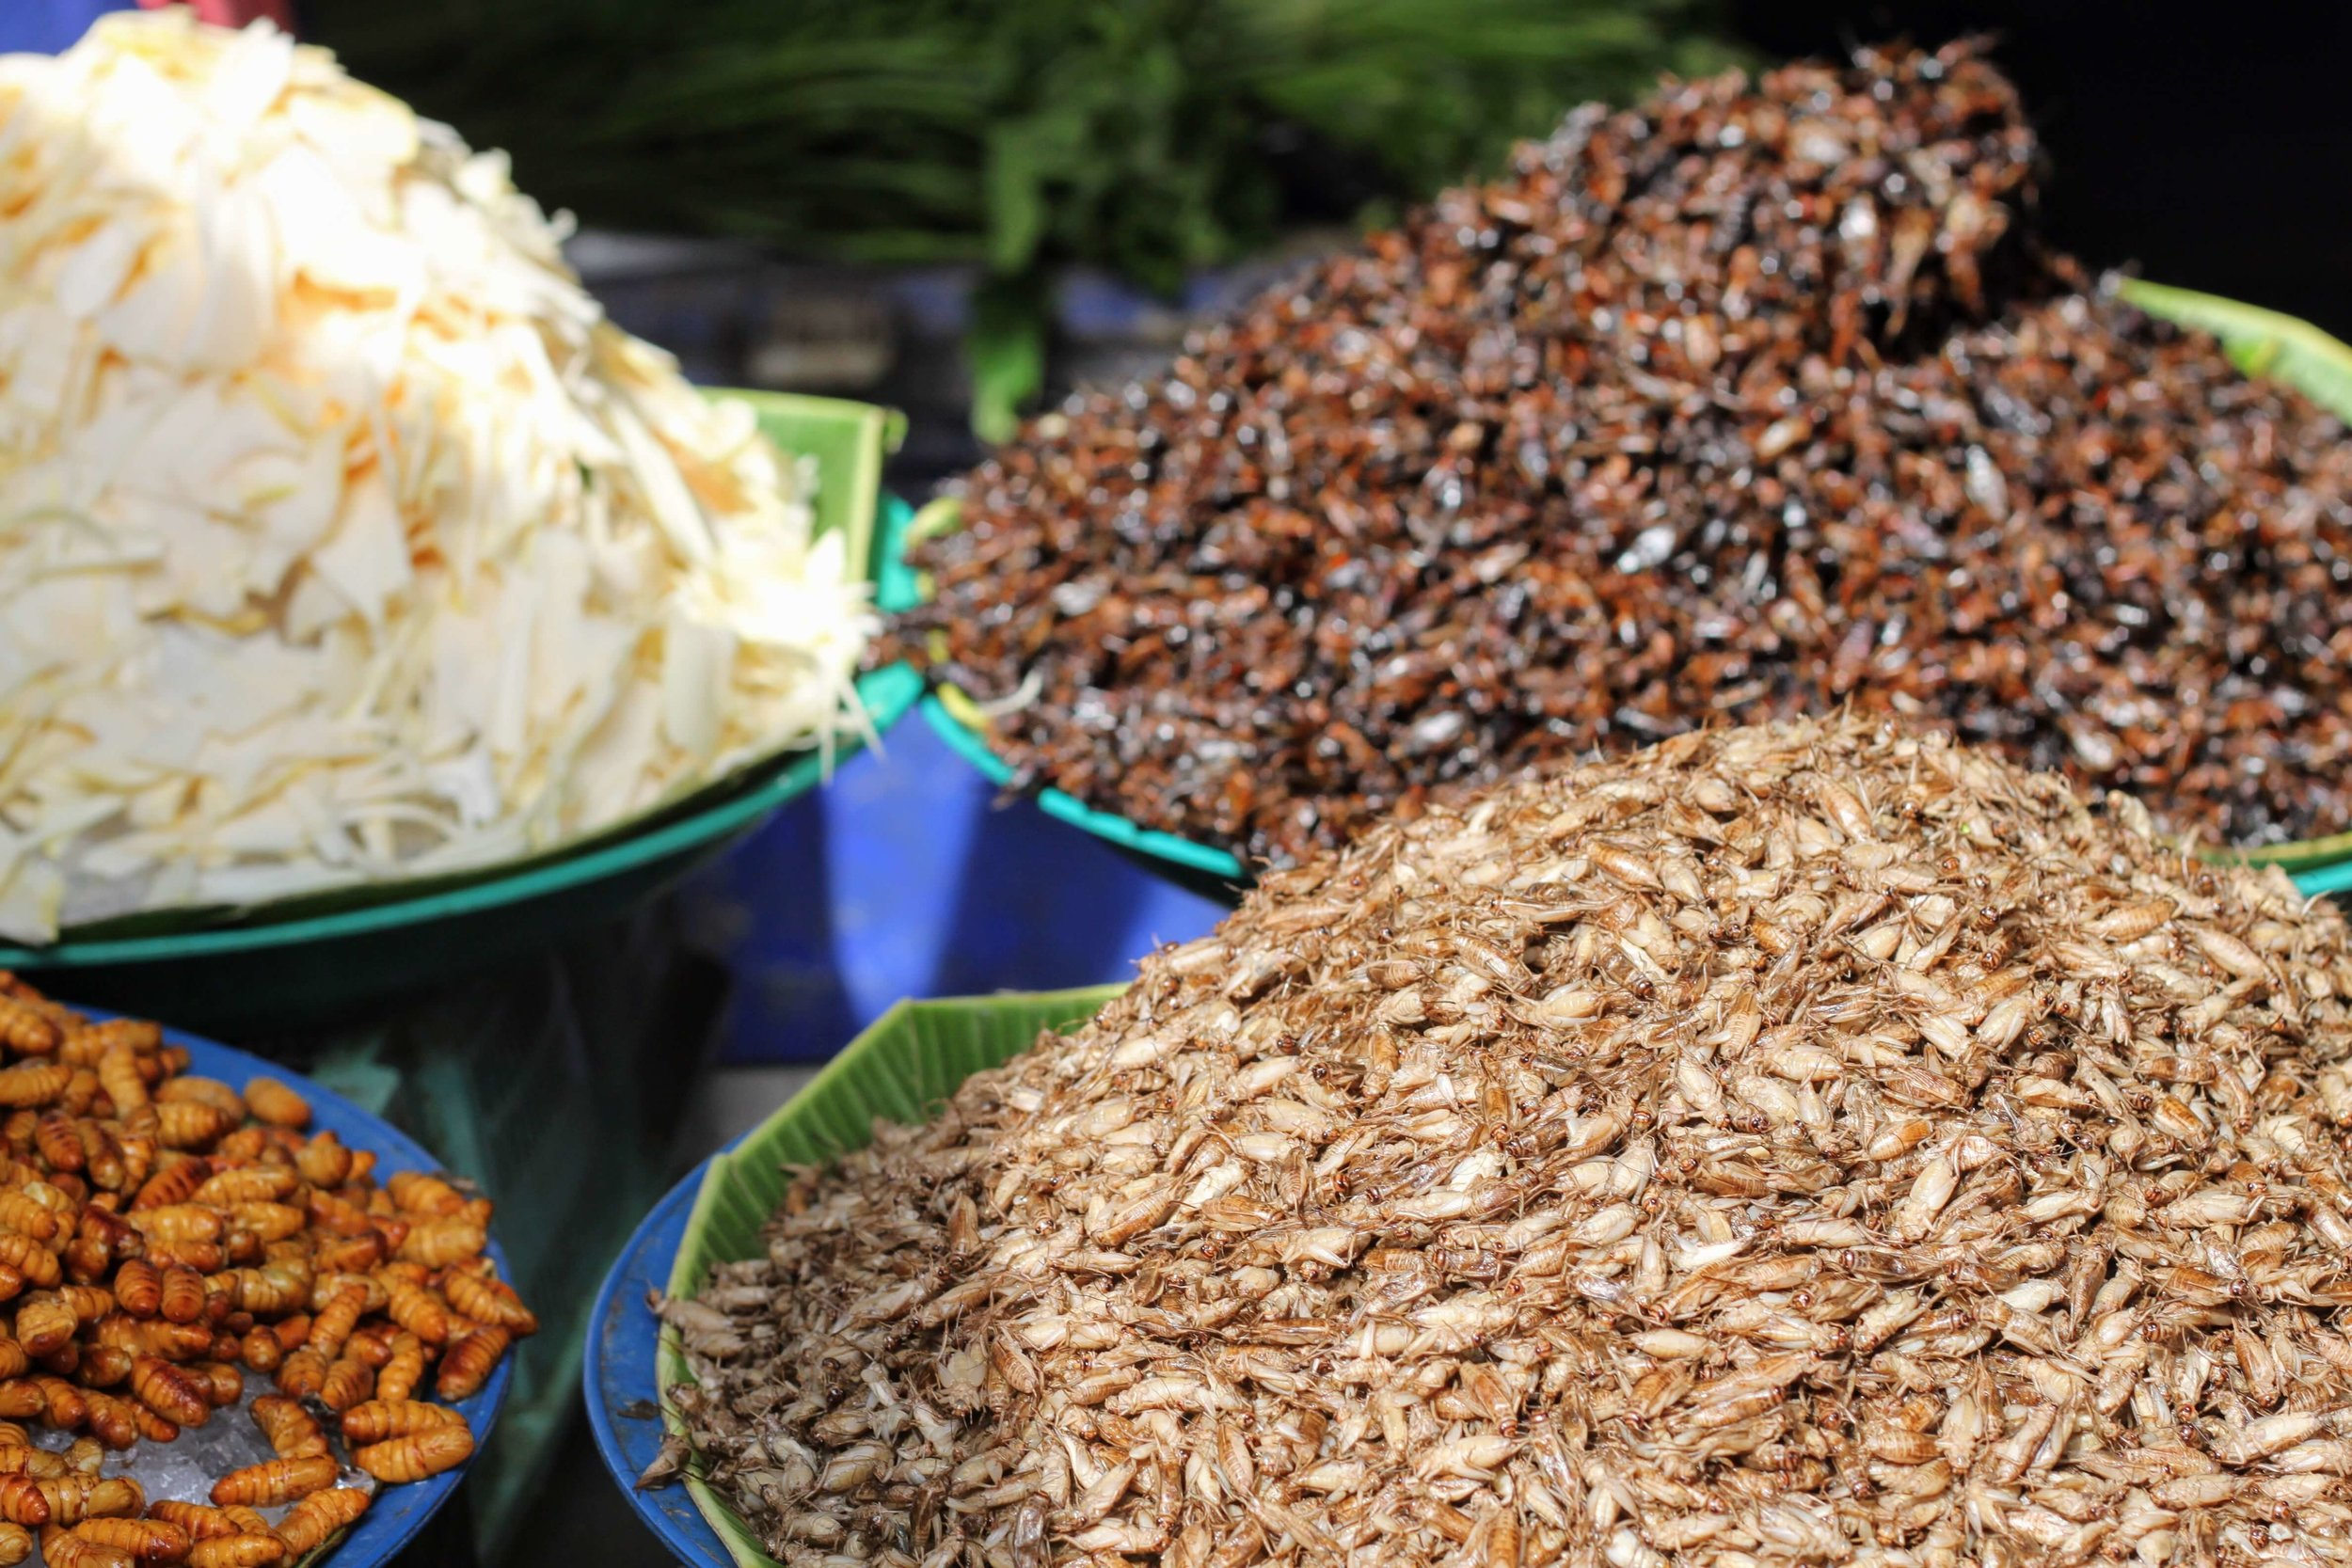 Fresh insects on ice for sale at Khlong Toei market in Bangkok.